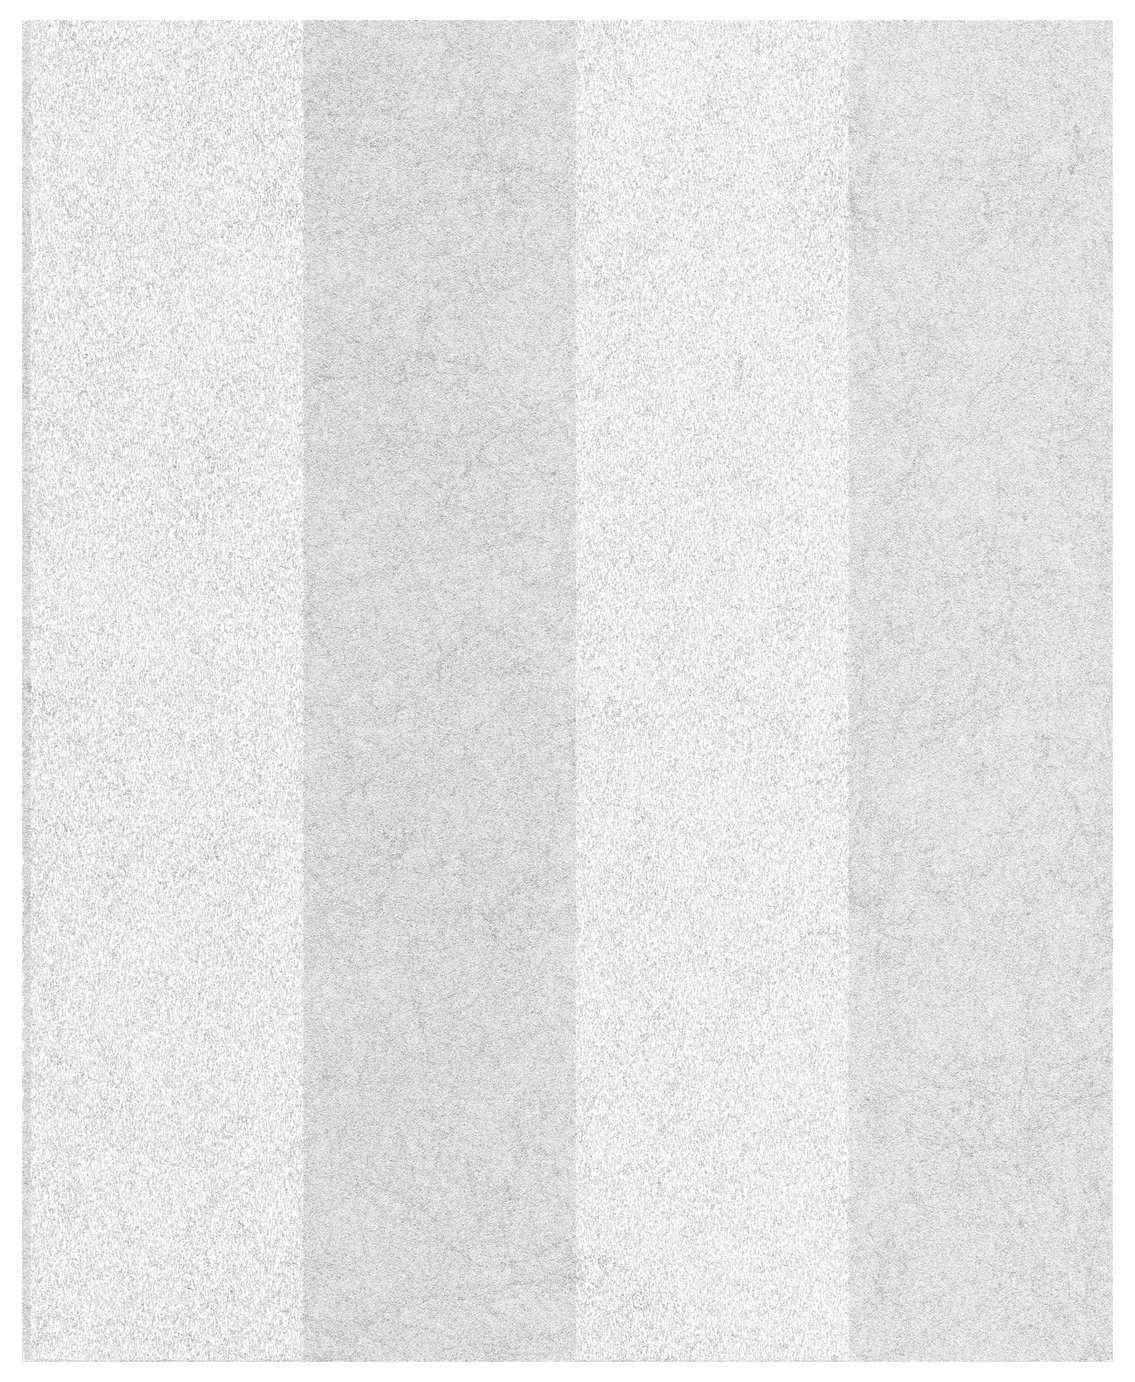 Image of Graham & Brown Artisan Stripe Wallpaper Silver